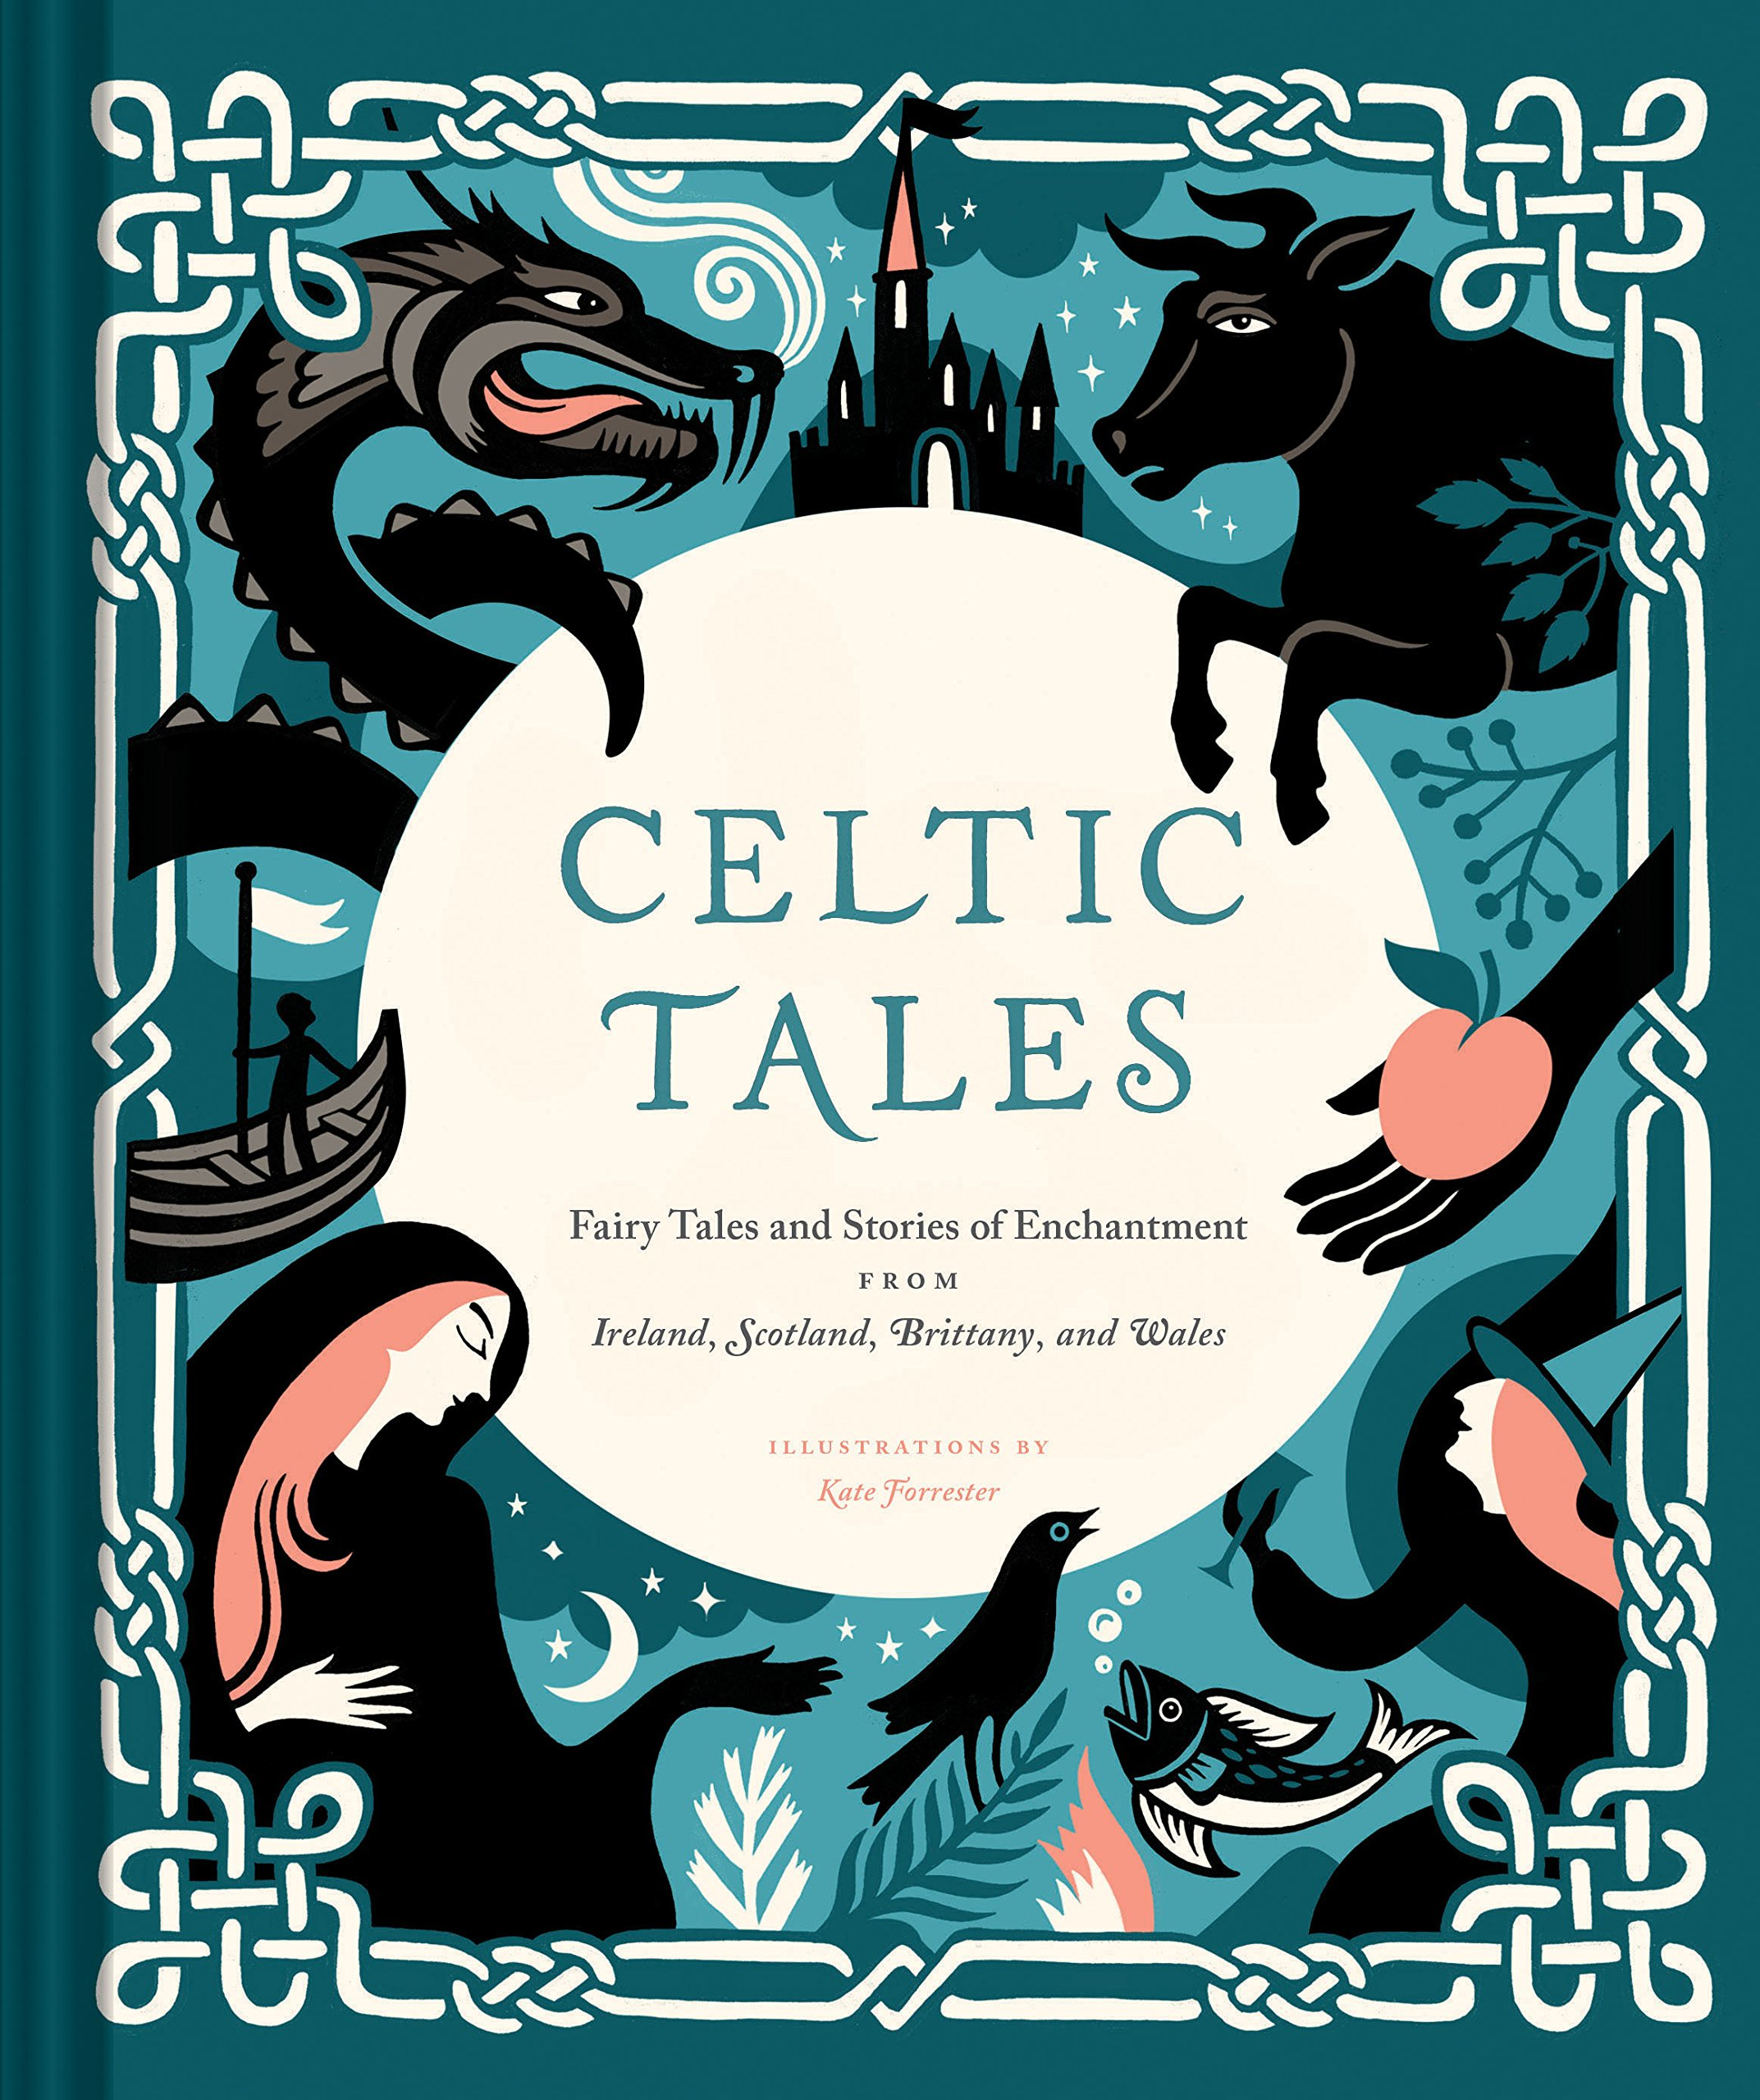 amazon com celtic tales fairy tales and stories of enchantment